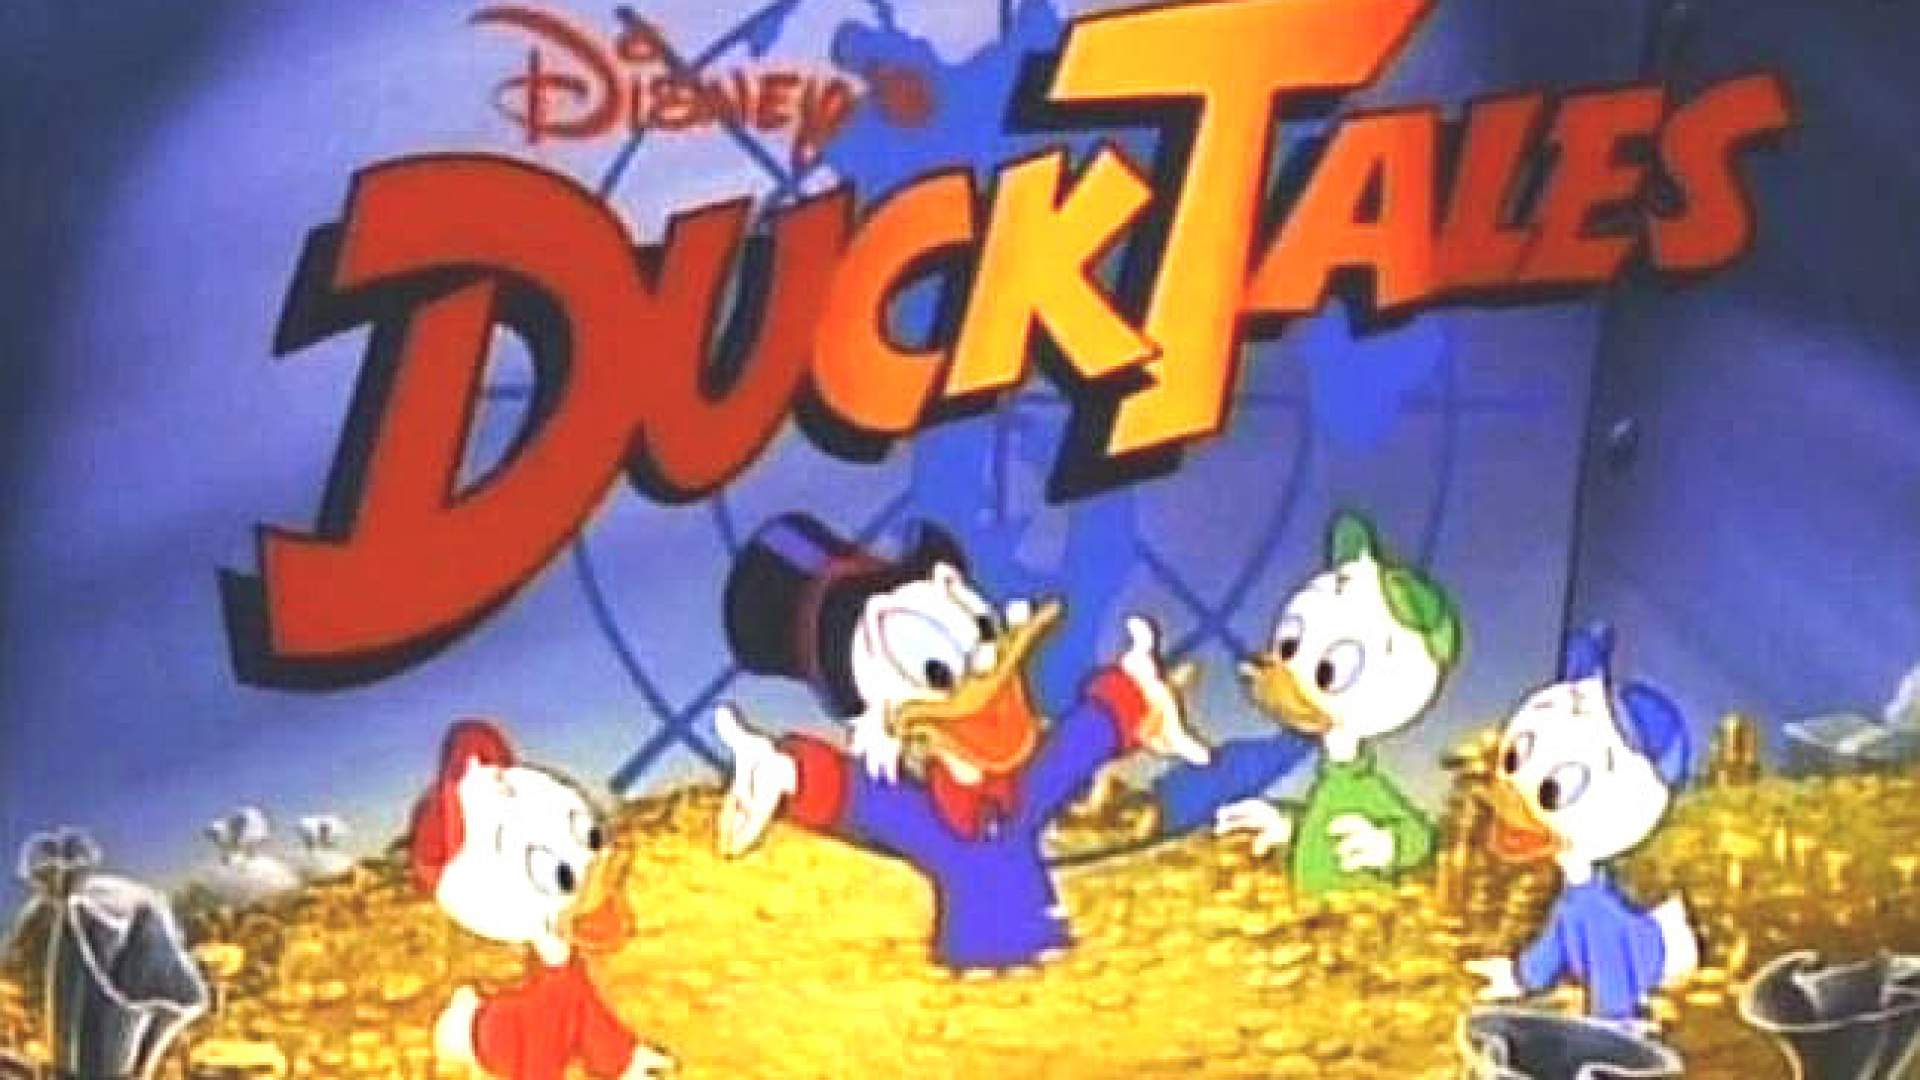 Ducktales Der Film Stream